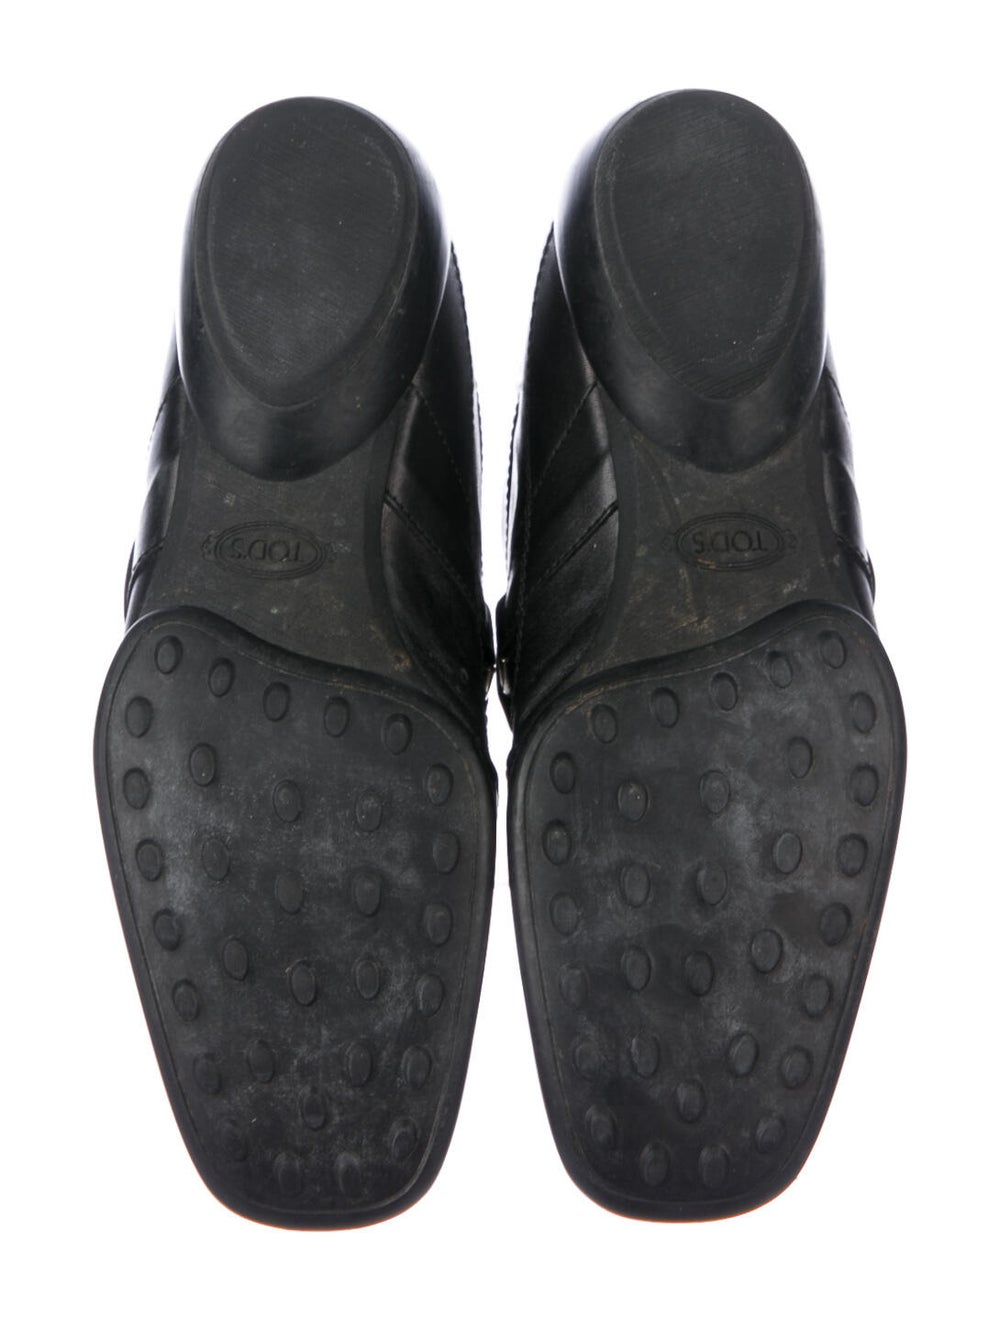 Tod's Leather Loafers Black - image 5